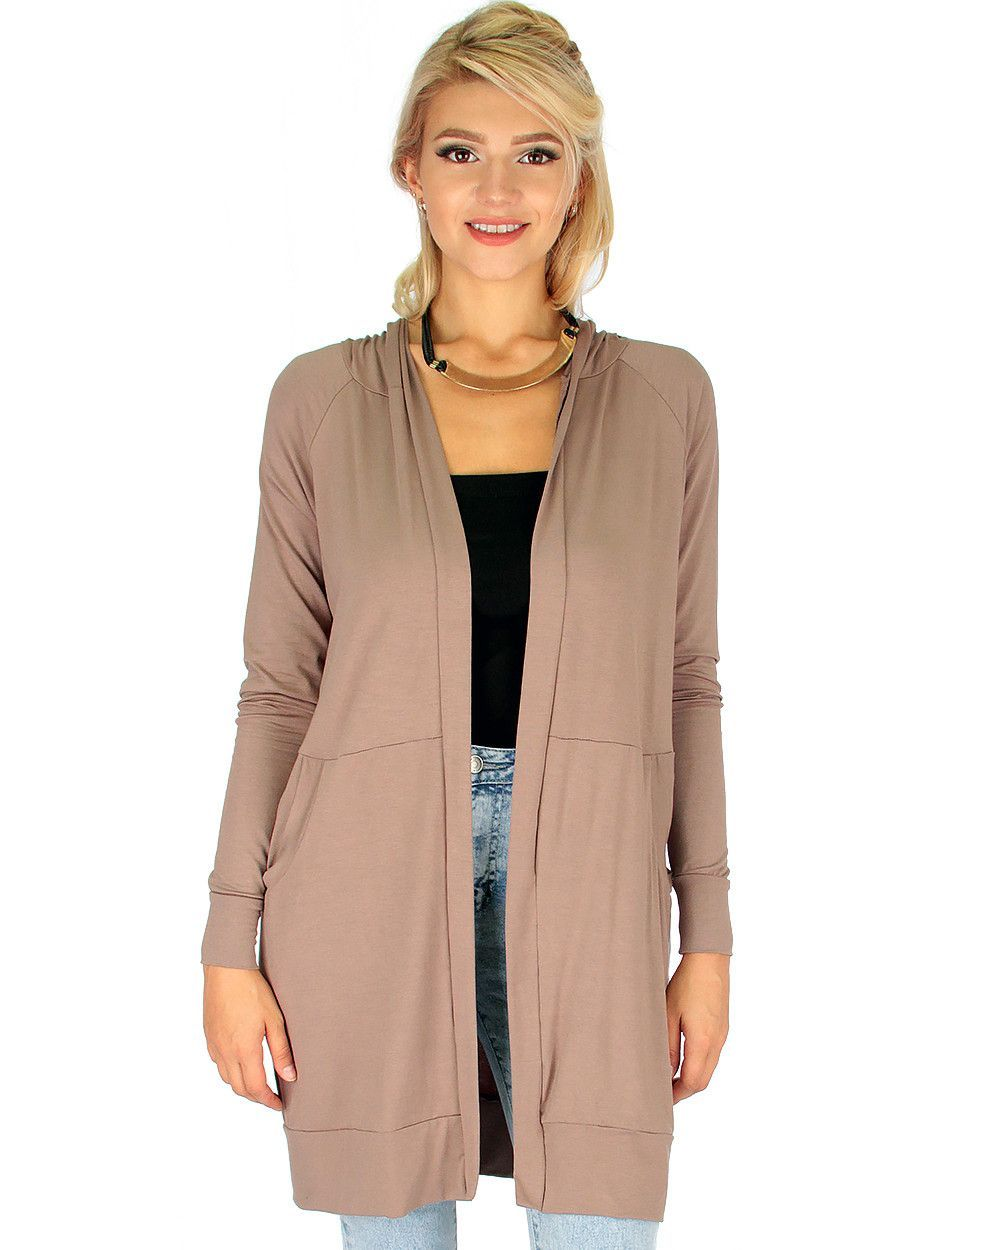 Long-Line Hooded Cardigan With Pockets In Taupe | Products, Taupe ...